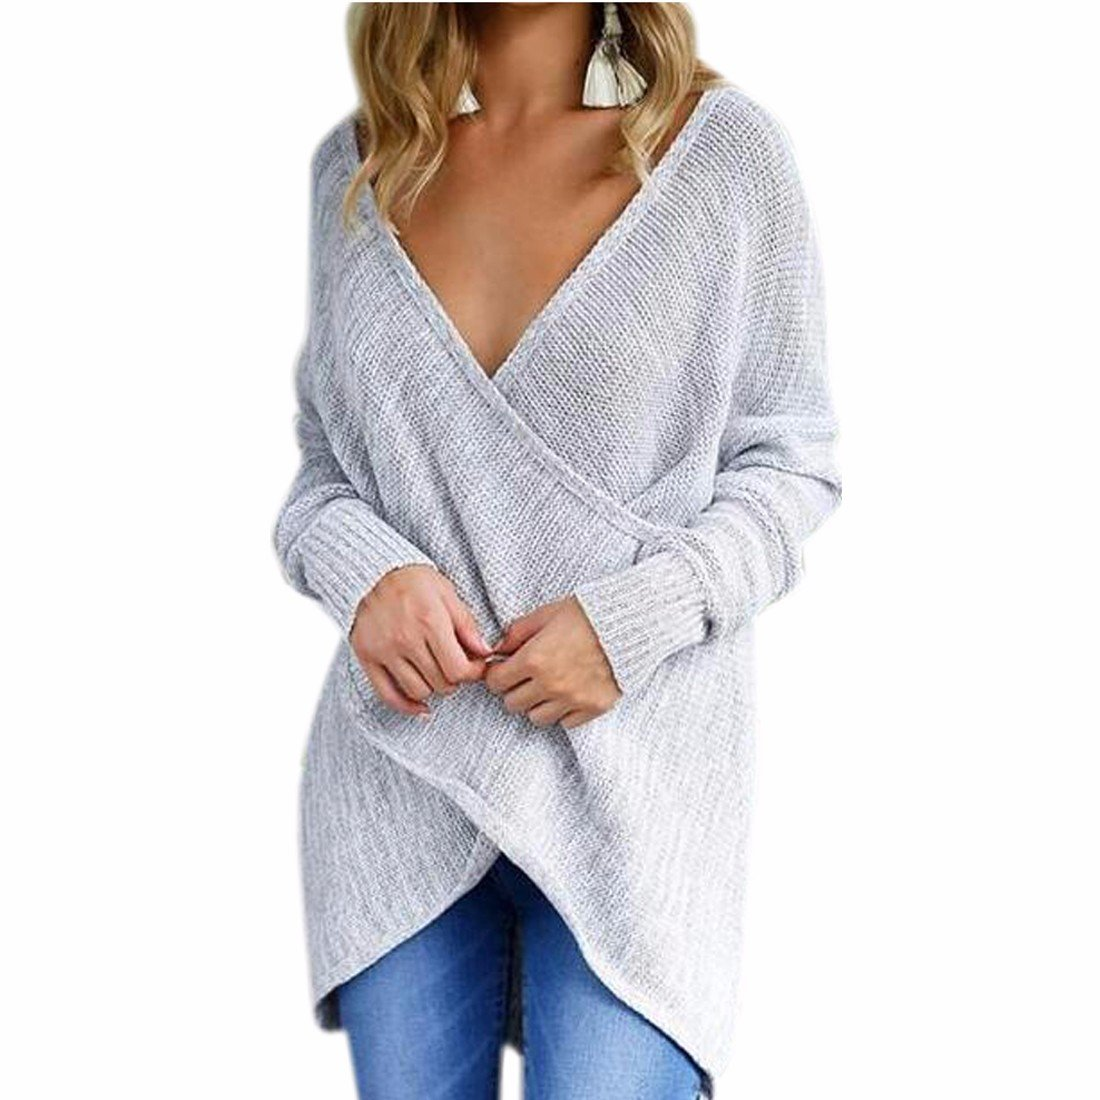 Paixpays Women'S V Neck Long-Sleeve Pullover Sweater Criss Cross Wrap Front E9054S0111